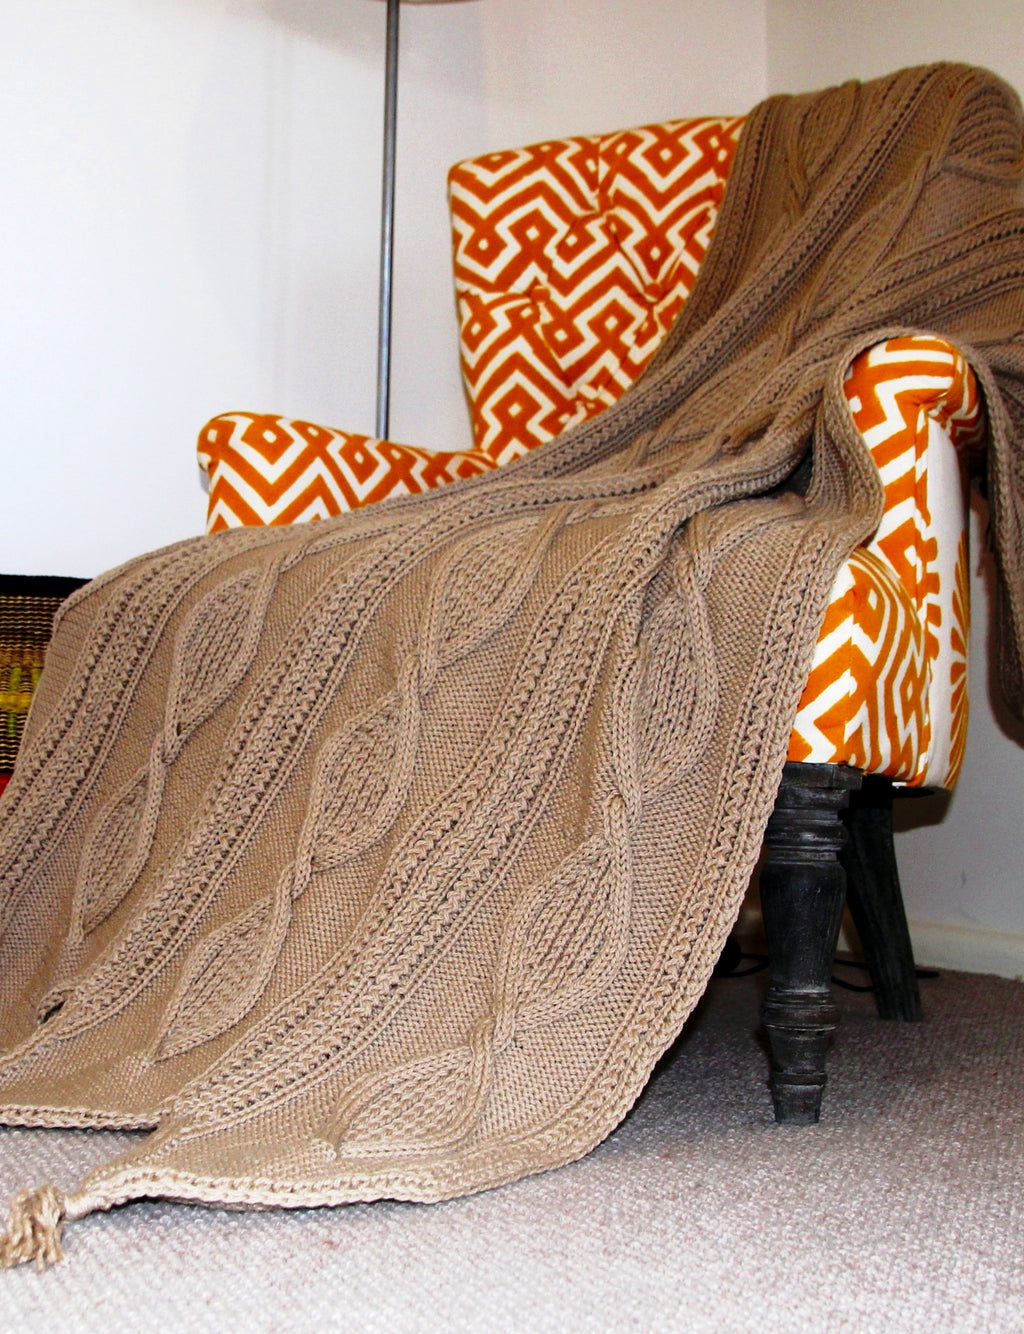 Knitted rug pattern using Almond Shell cables. Rug displayed draped over chair.